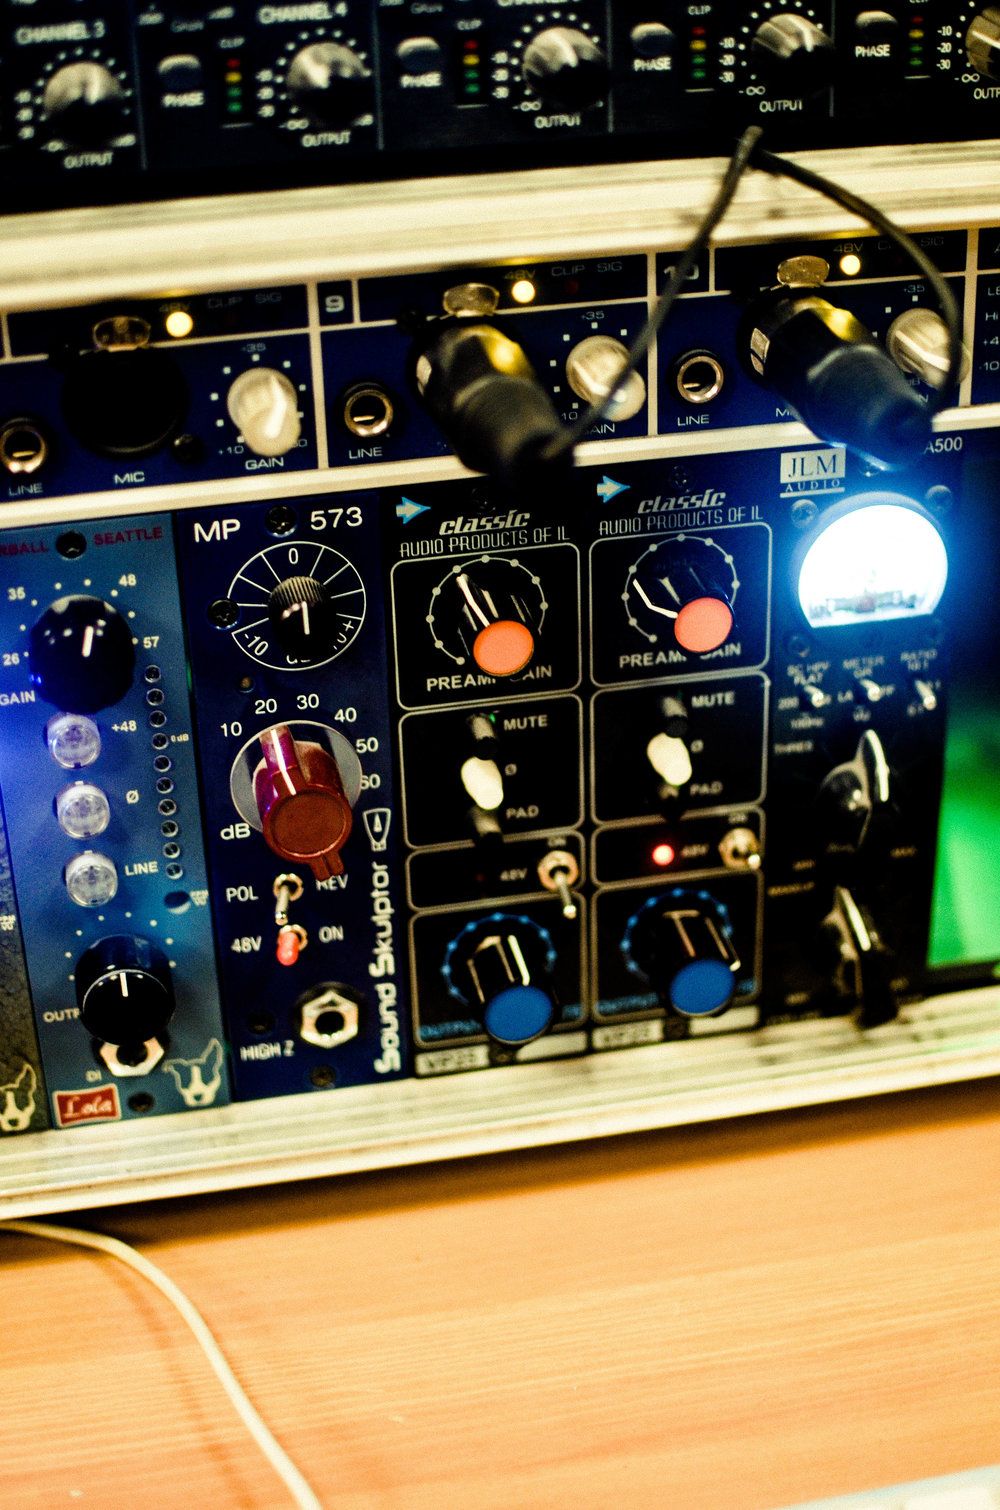 preamps.jpg